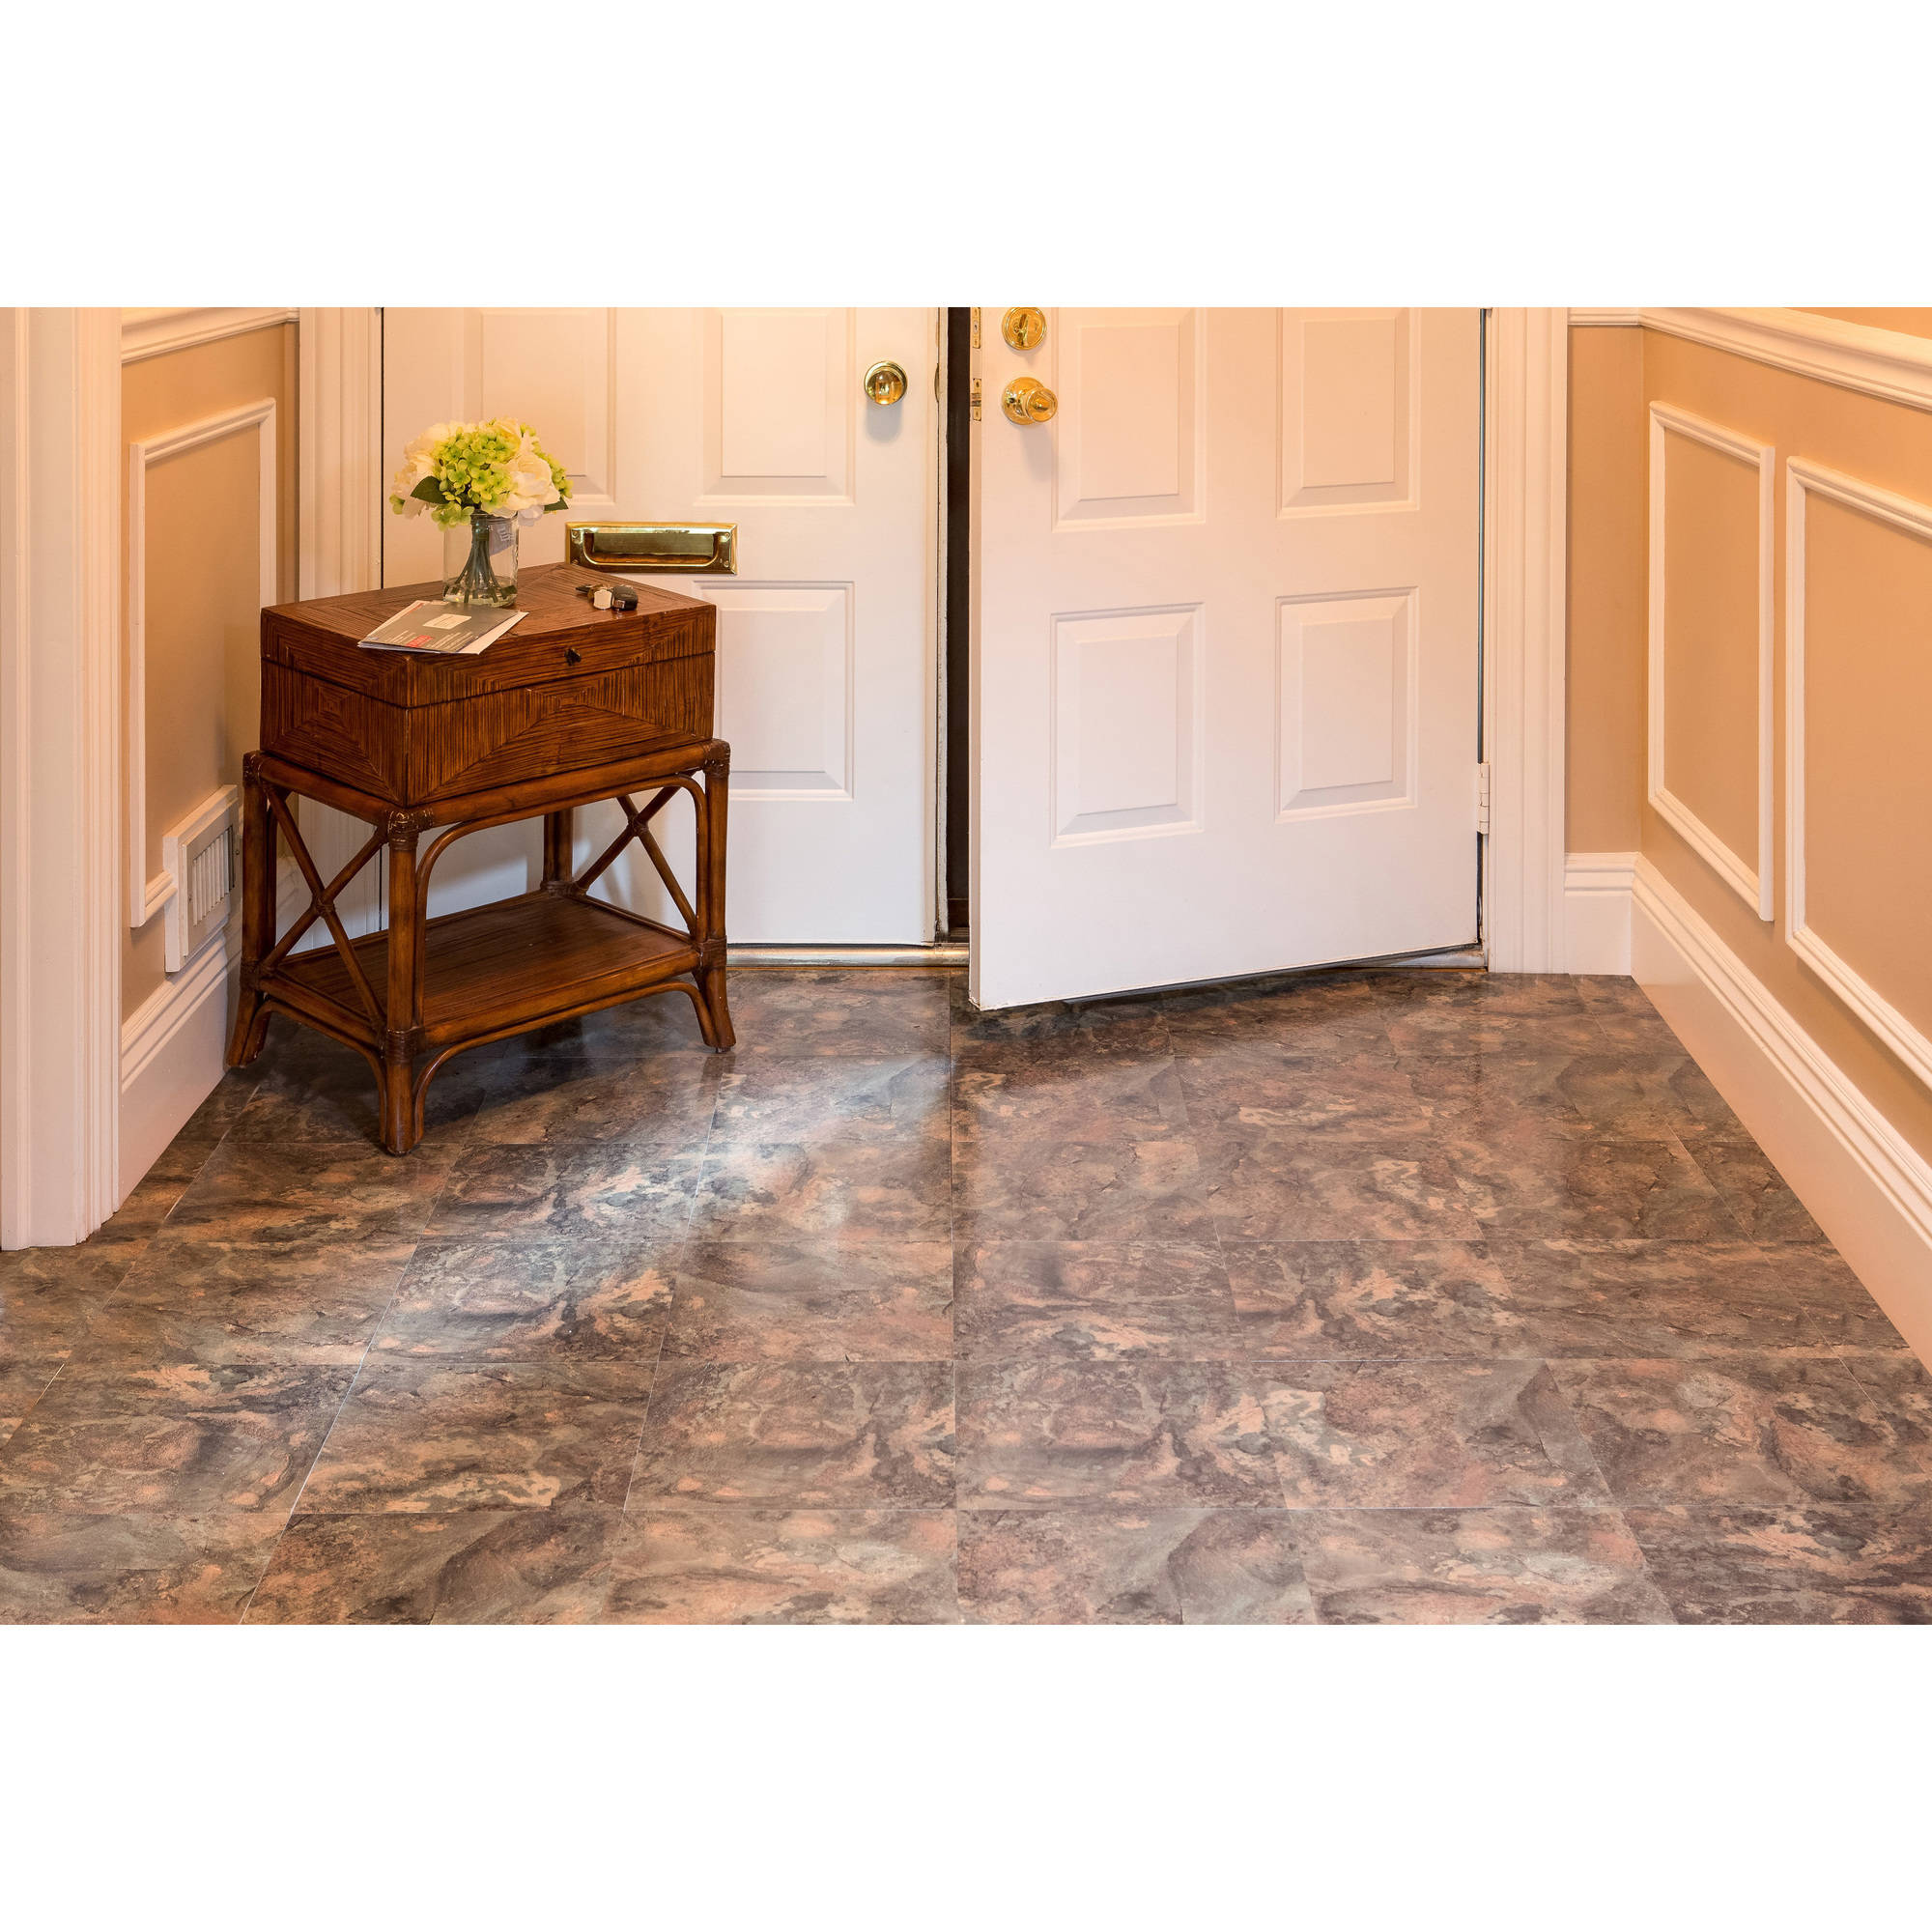 Nexus granite 12x12 self adhesive vinyl floor tile 20 tiles20 nexus granite 12x12 self adhesive vinyl floor tile 20 tiles20 sqft walmart dailygadgetfo Image collections